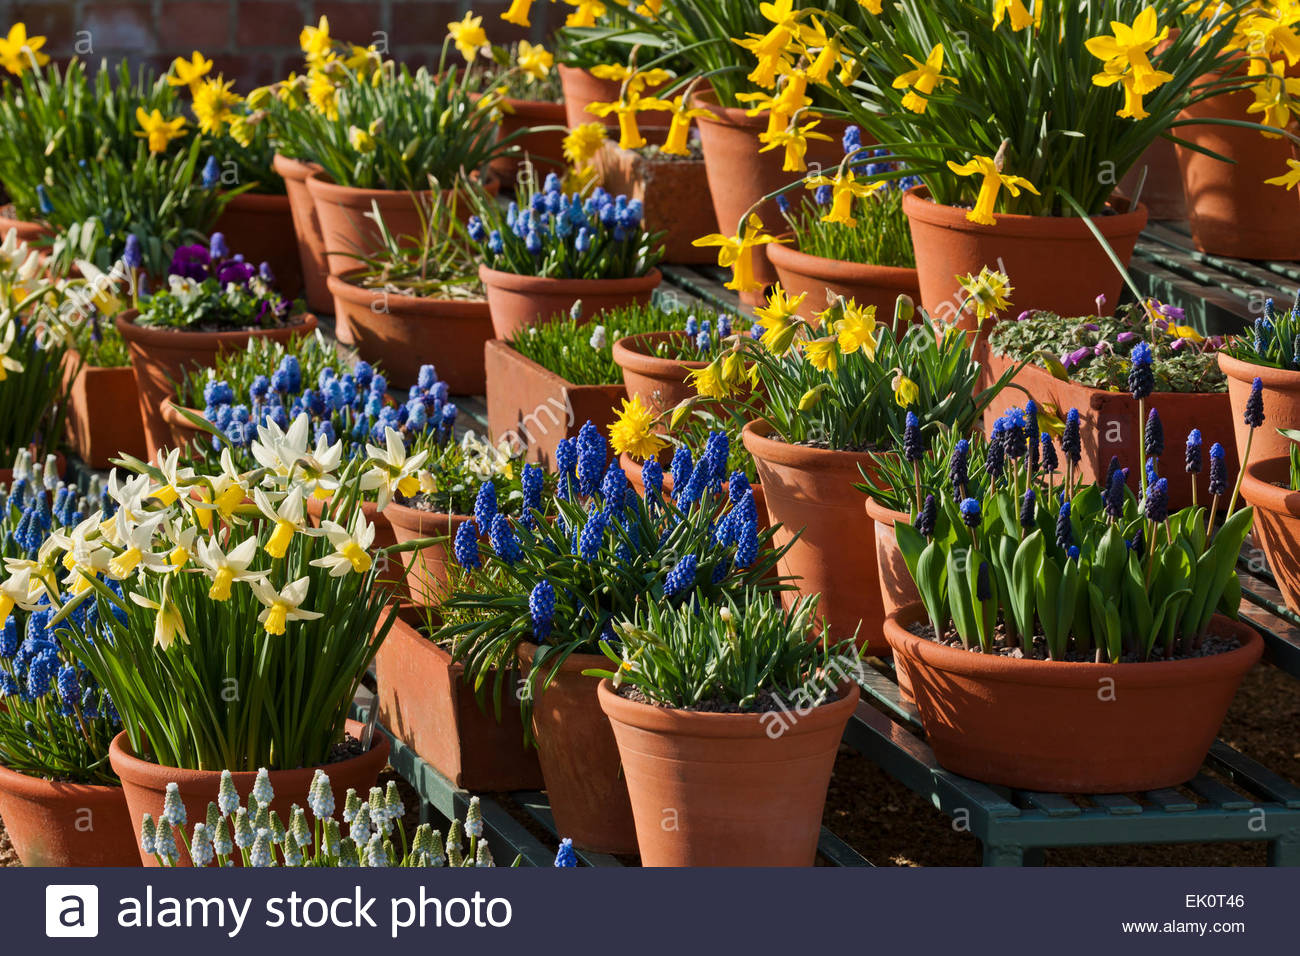 Spring bulbs in terracotta clay pots - Stock Image